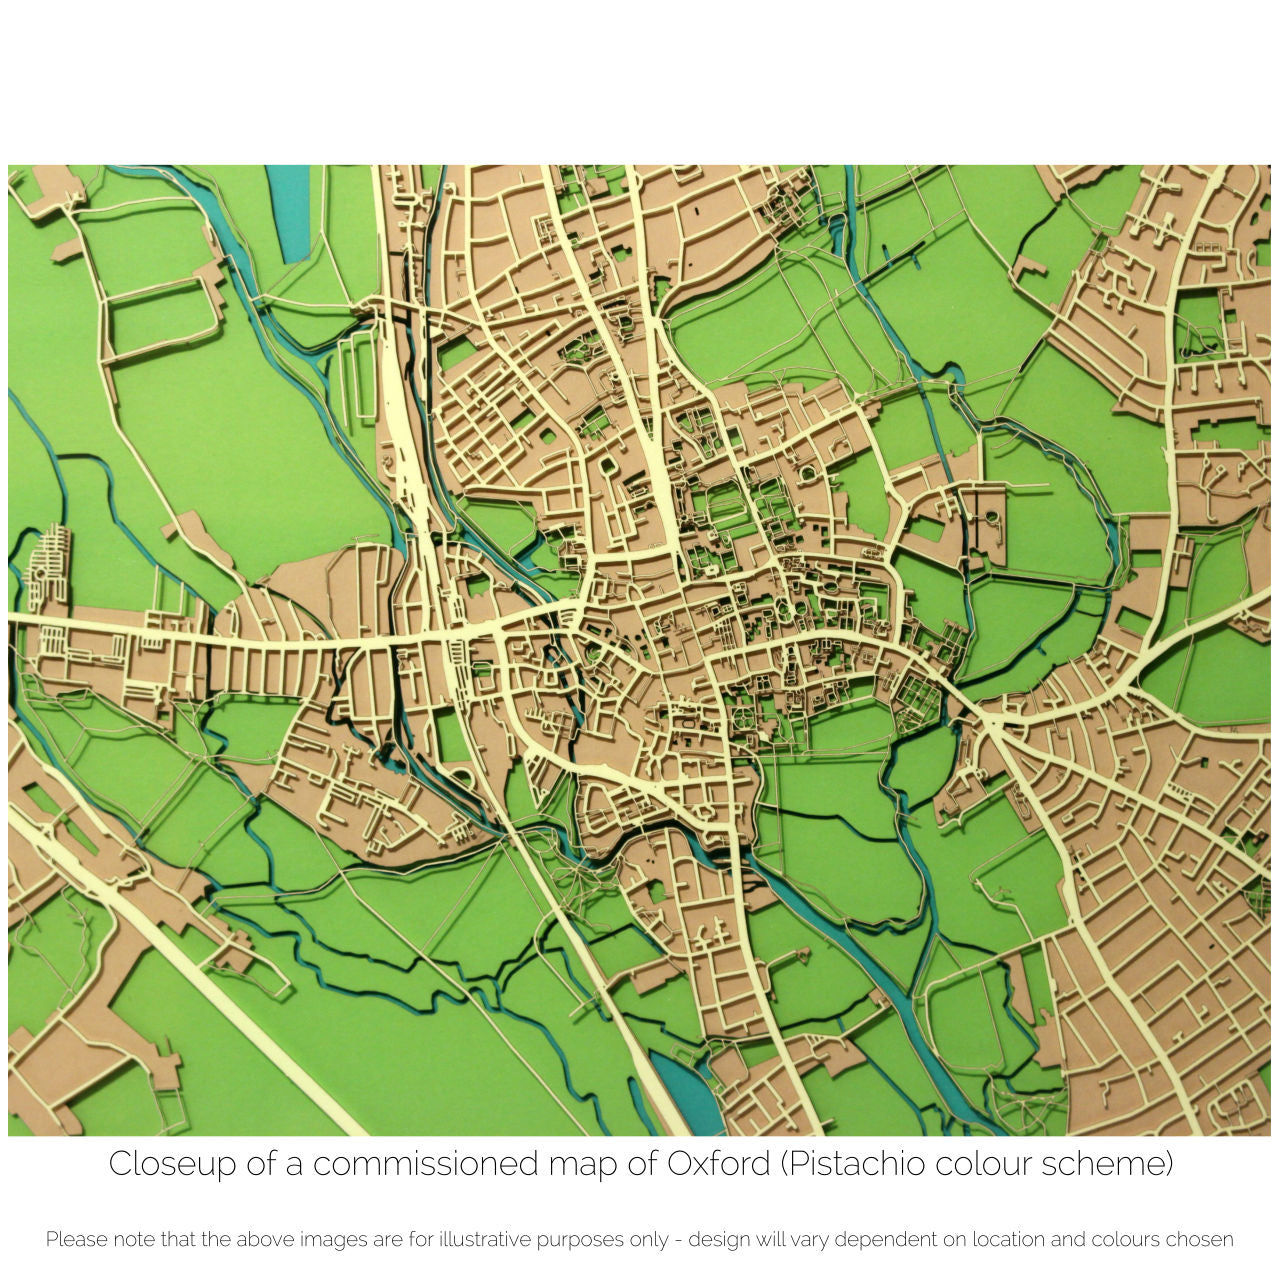 an intricate street map of oxford cut from paper